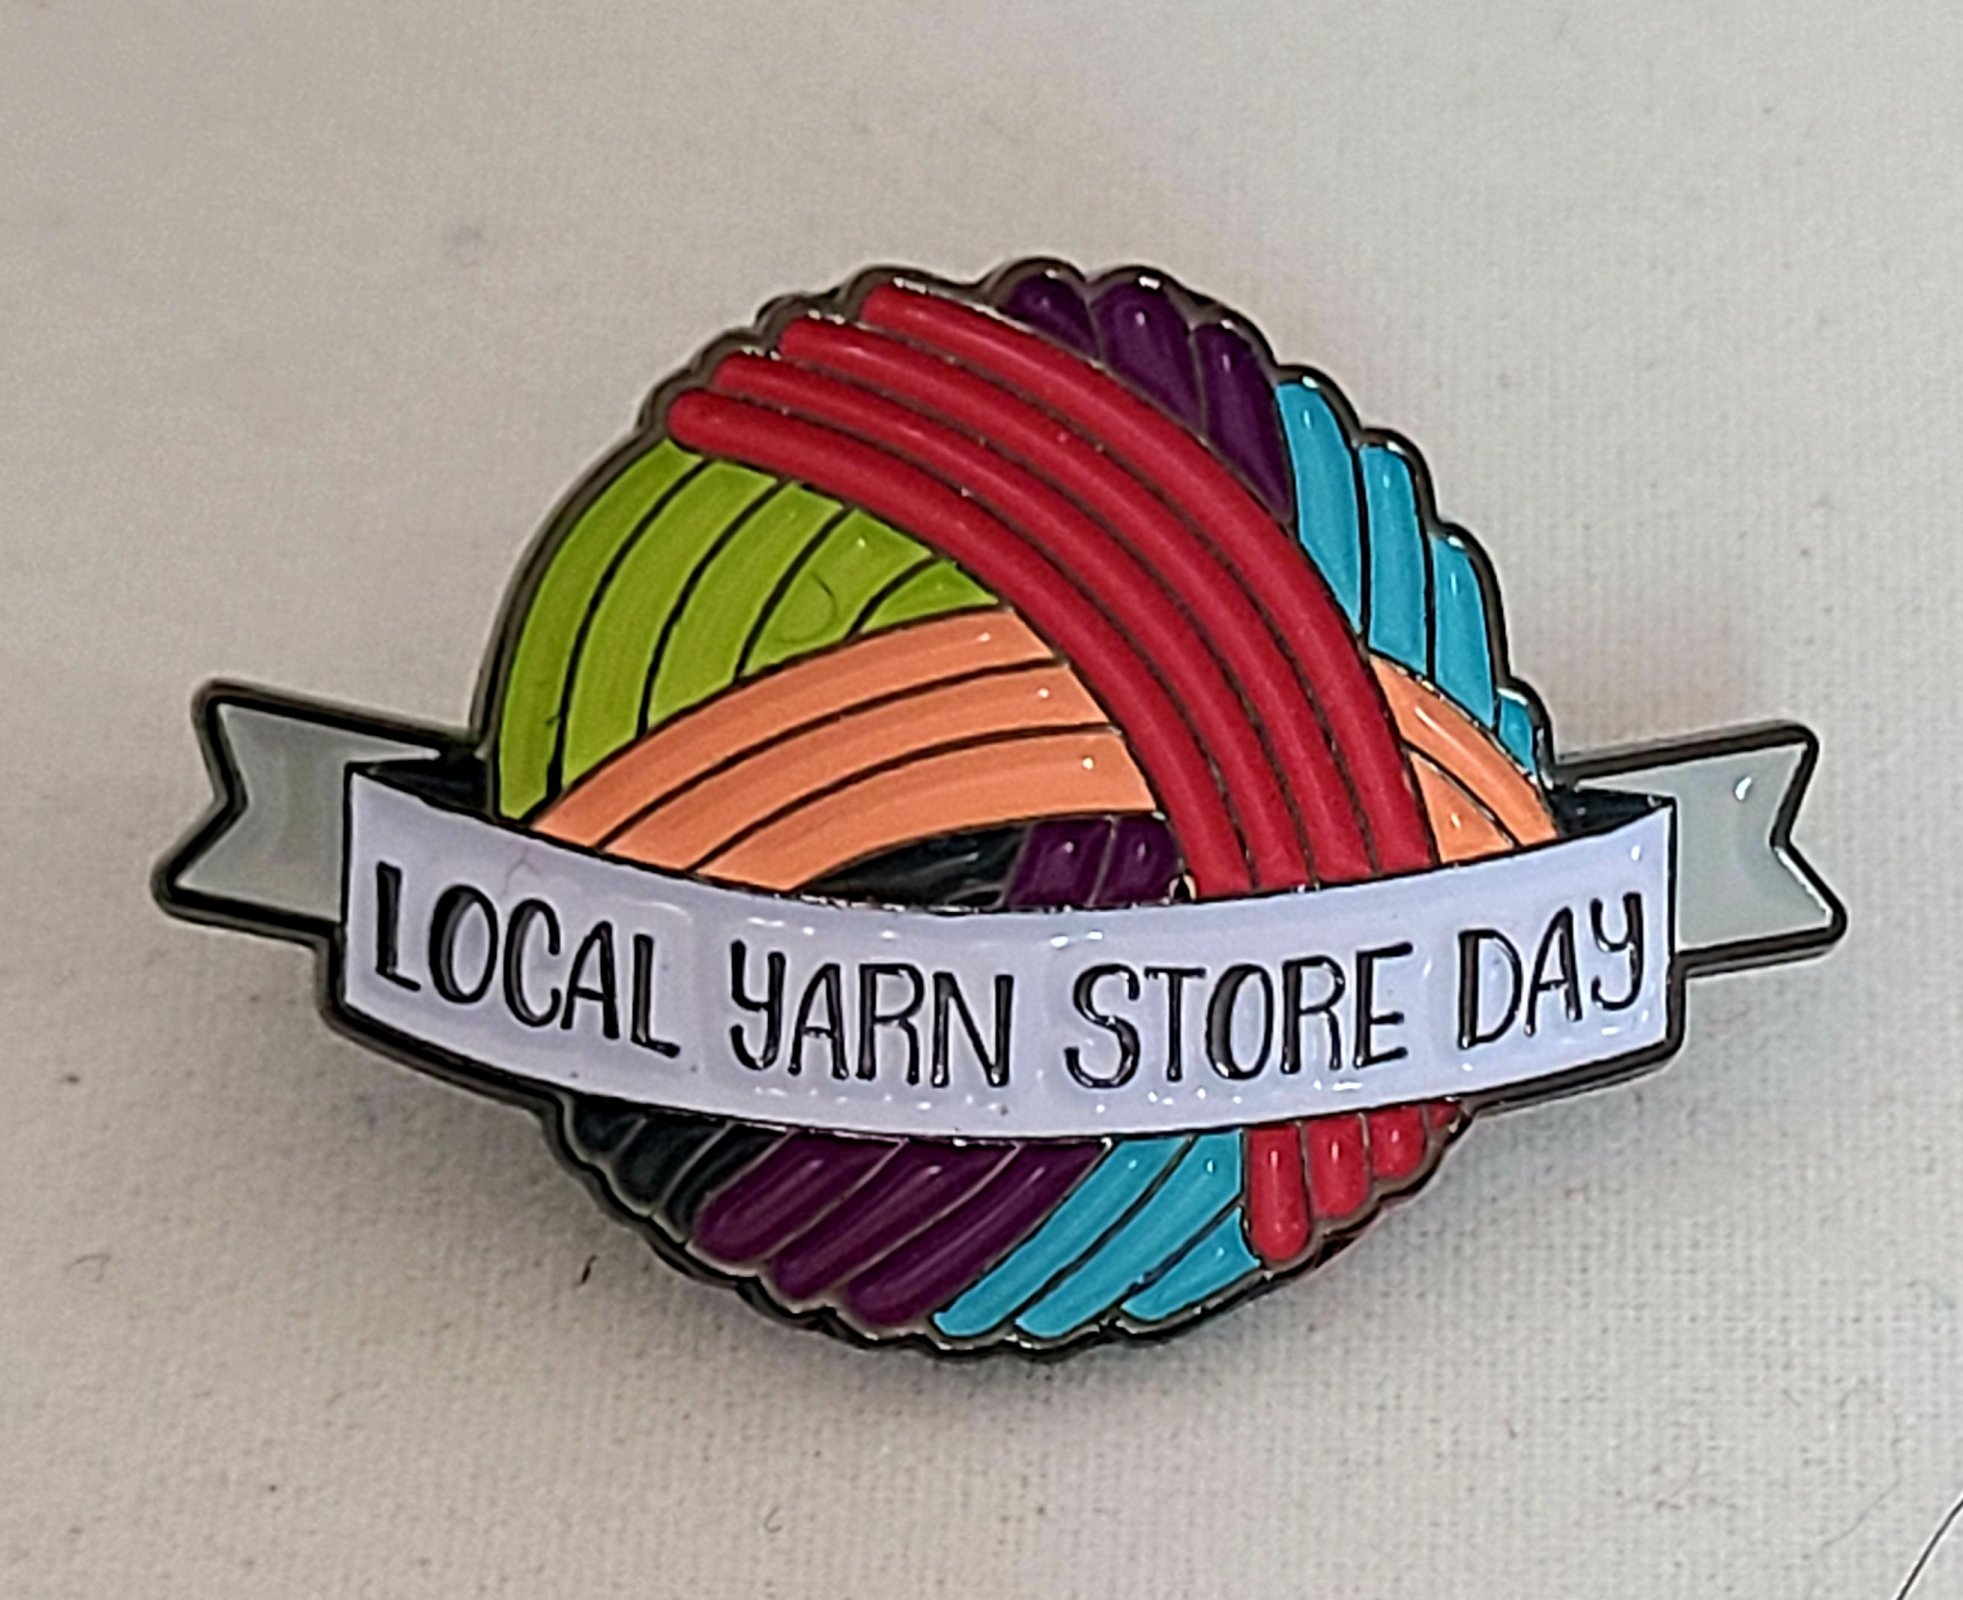 Local Yarn Store Day (2020) Pin (SHEEP THRILLS Exclusive)